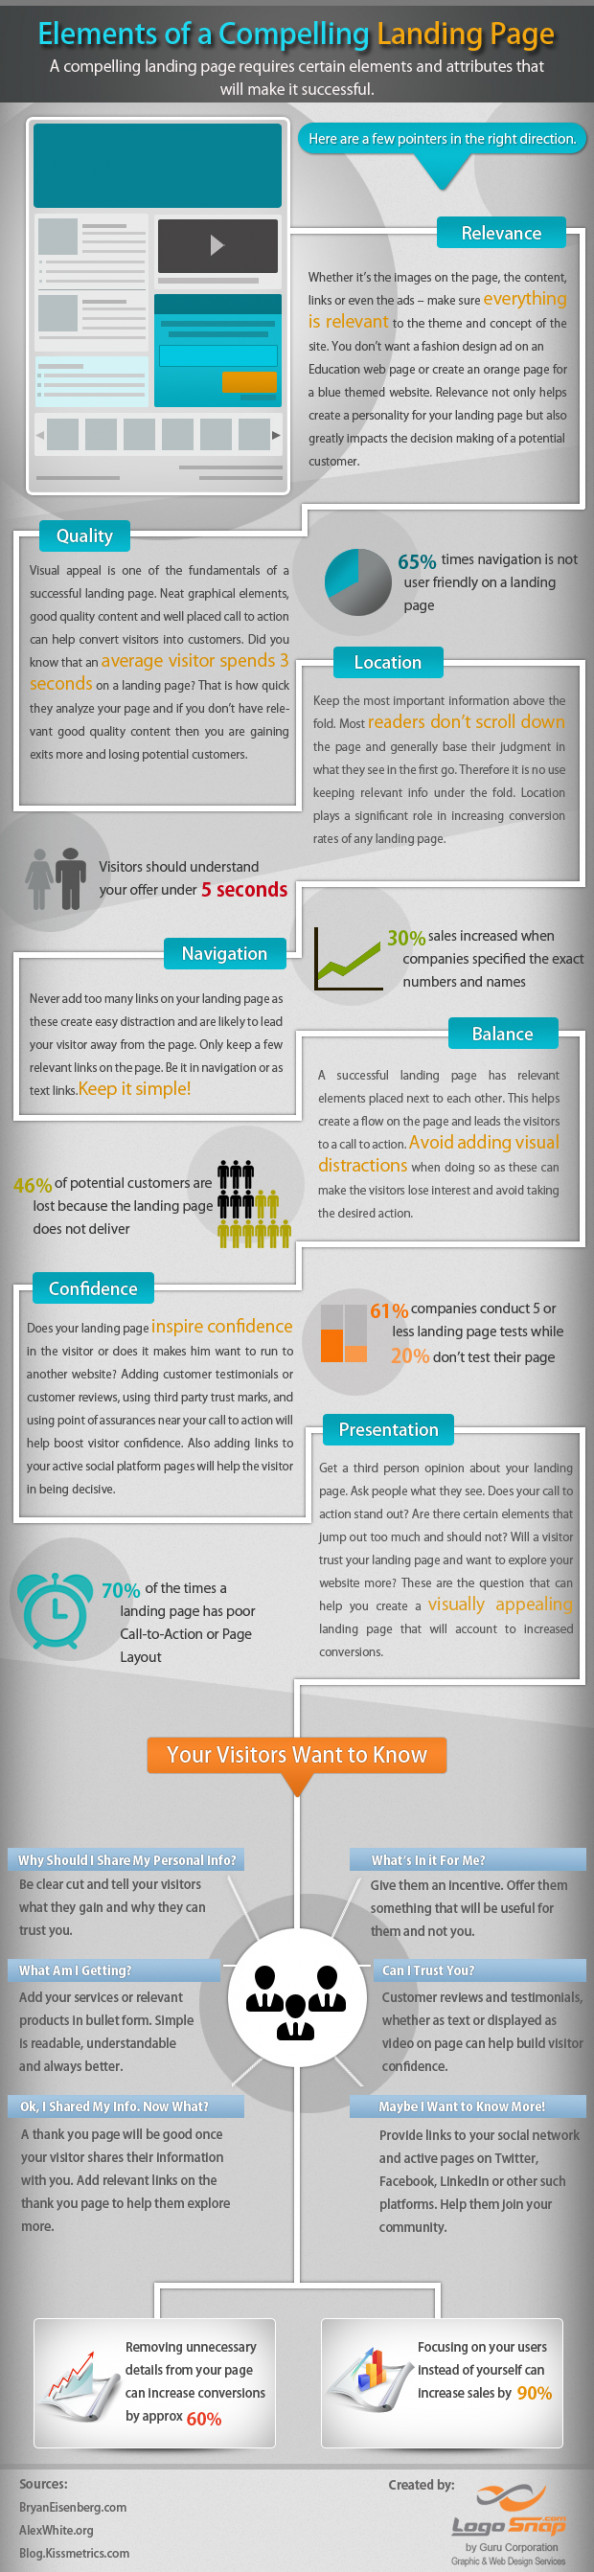 Design and Elements of a Landing Page Infographic